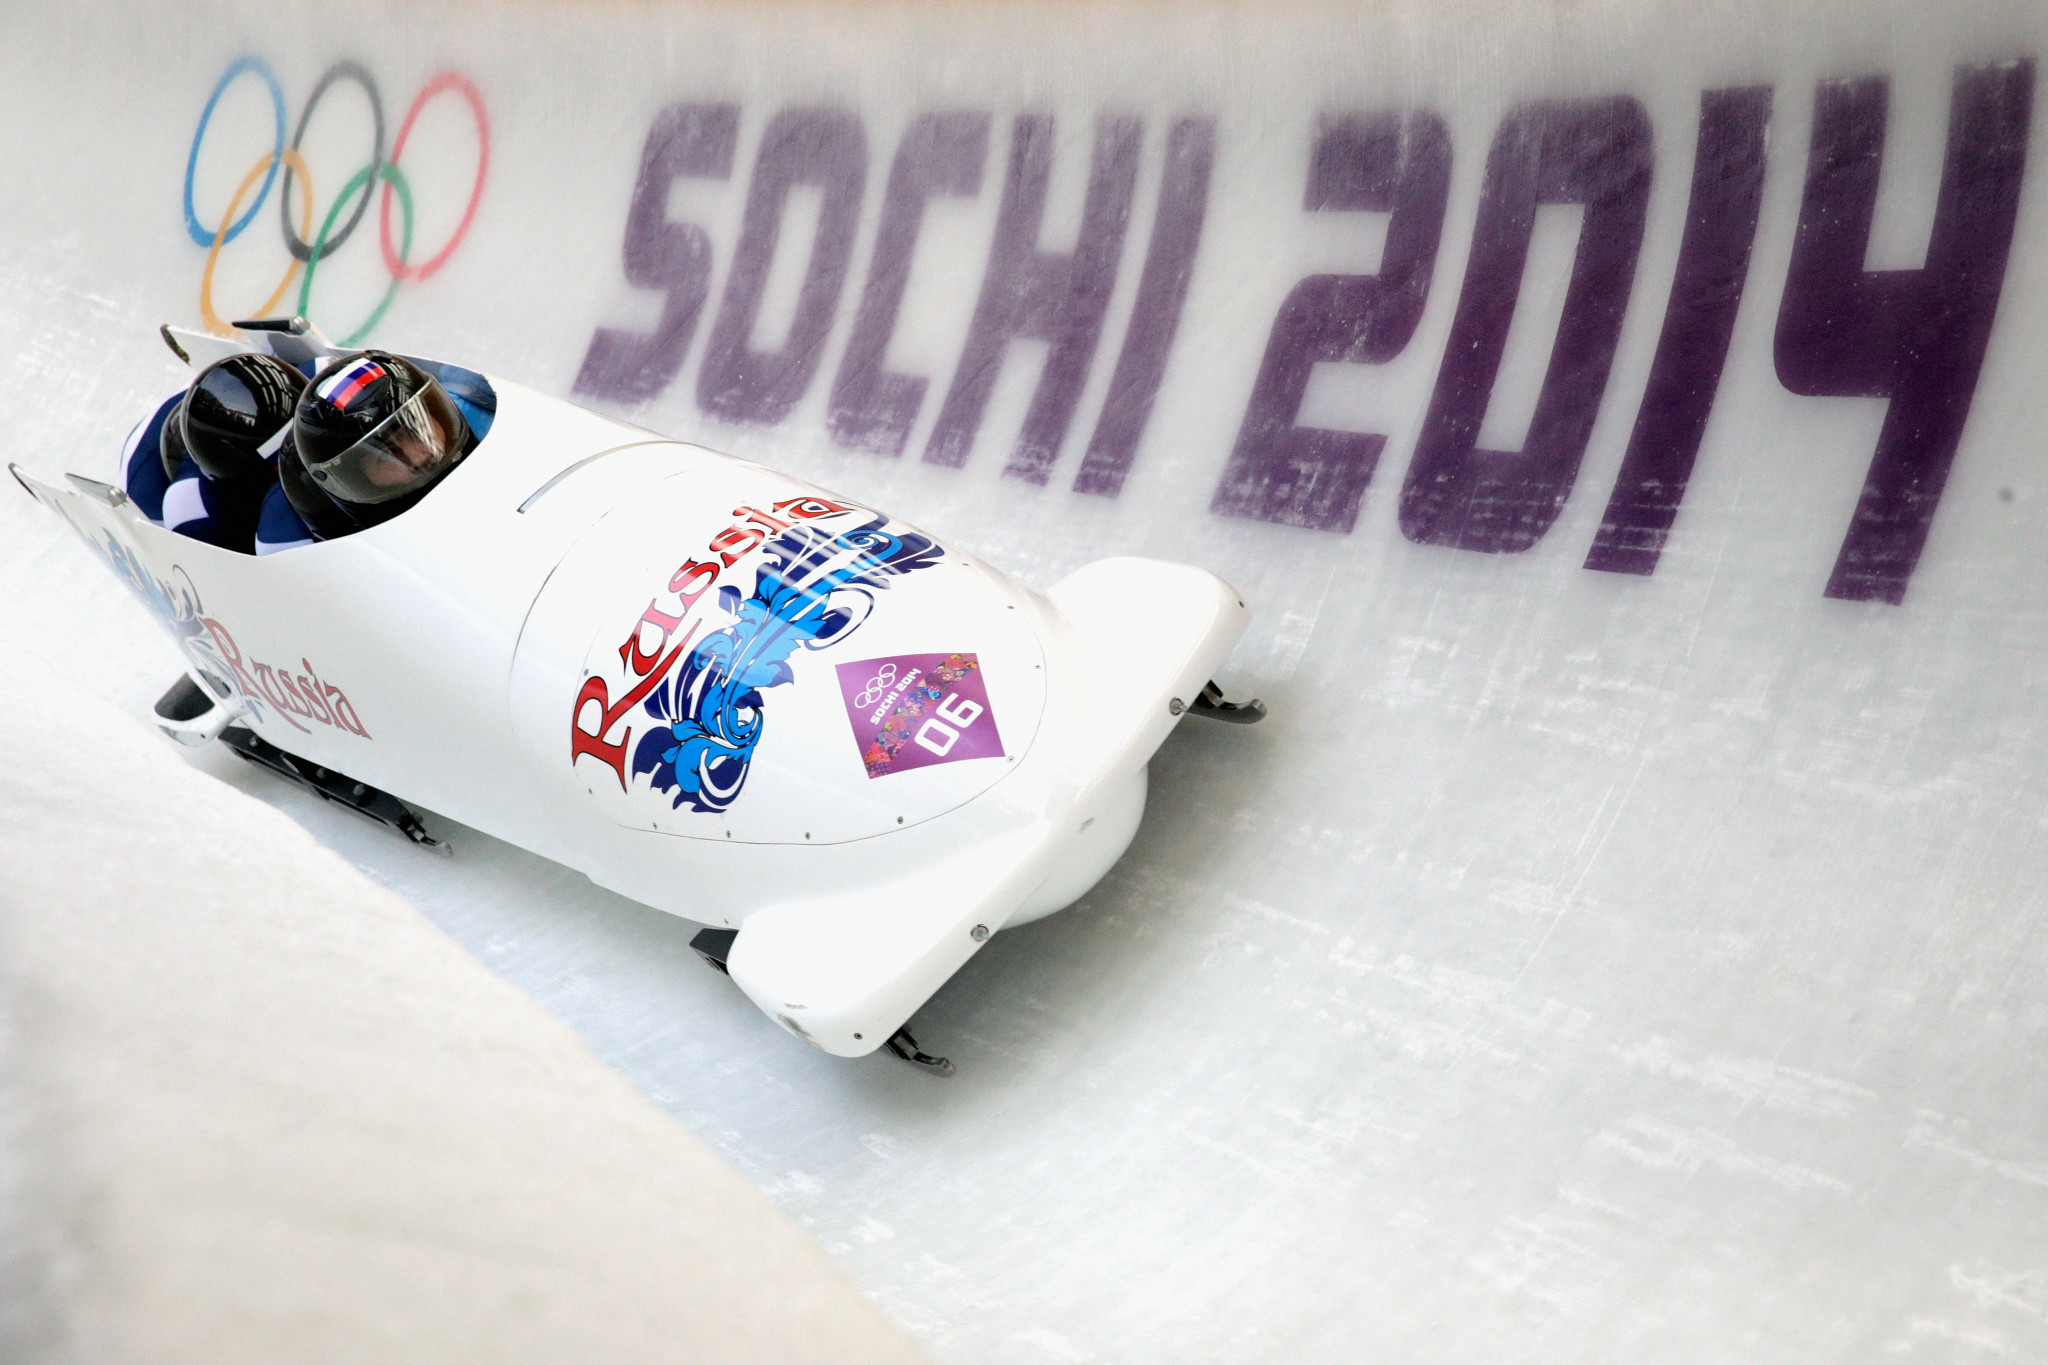 Maxim Belugin competed in two-man and four-man events at Sochi 2014 ©Getty Images